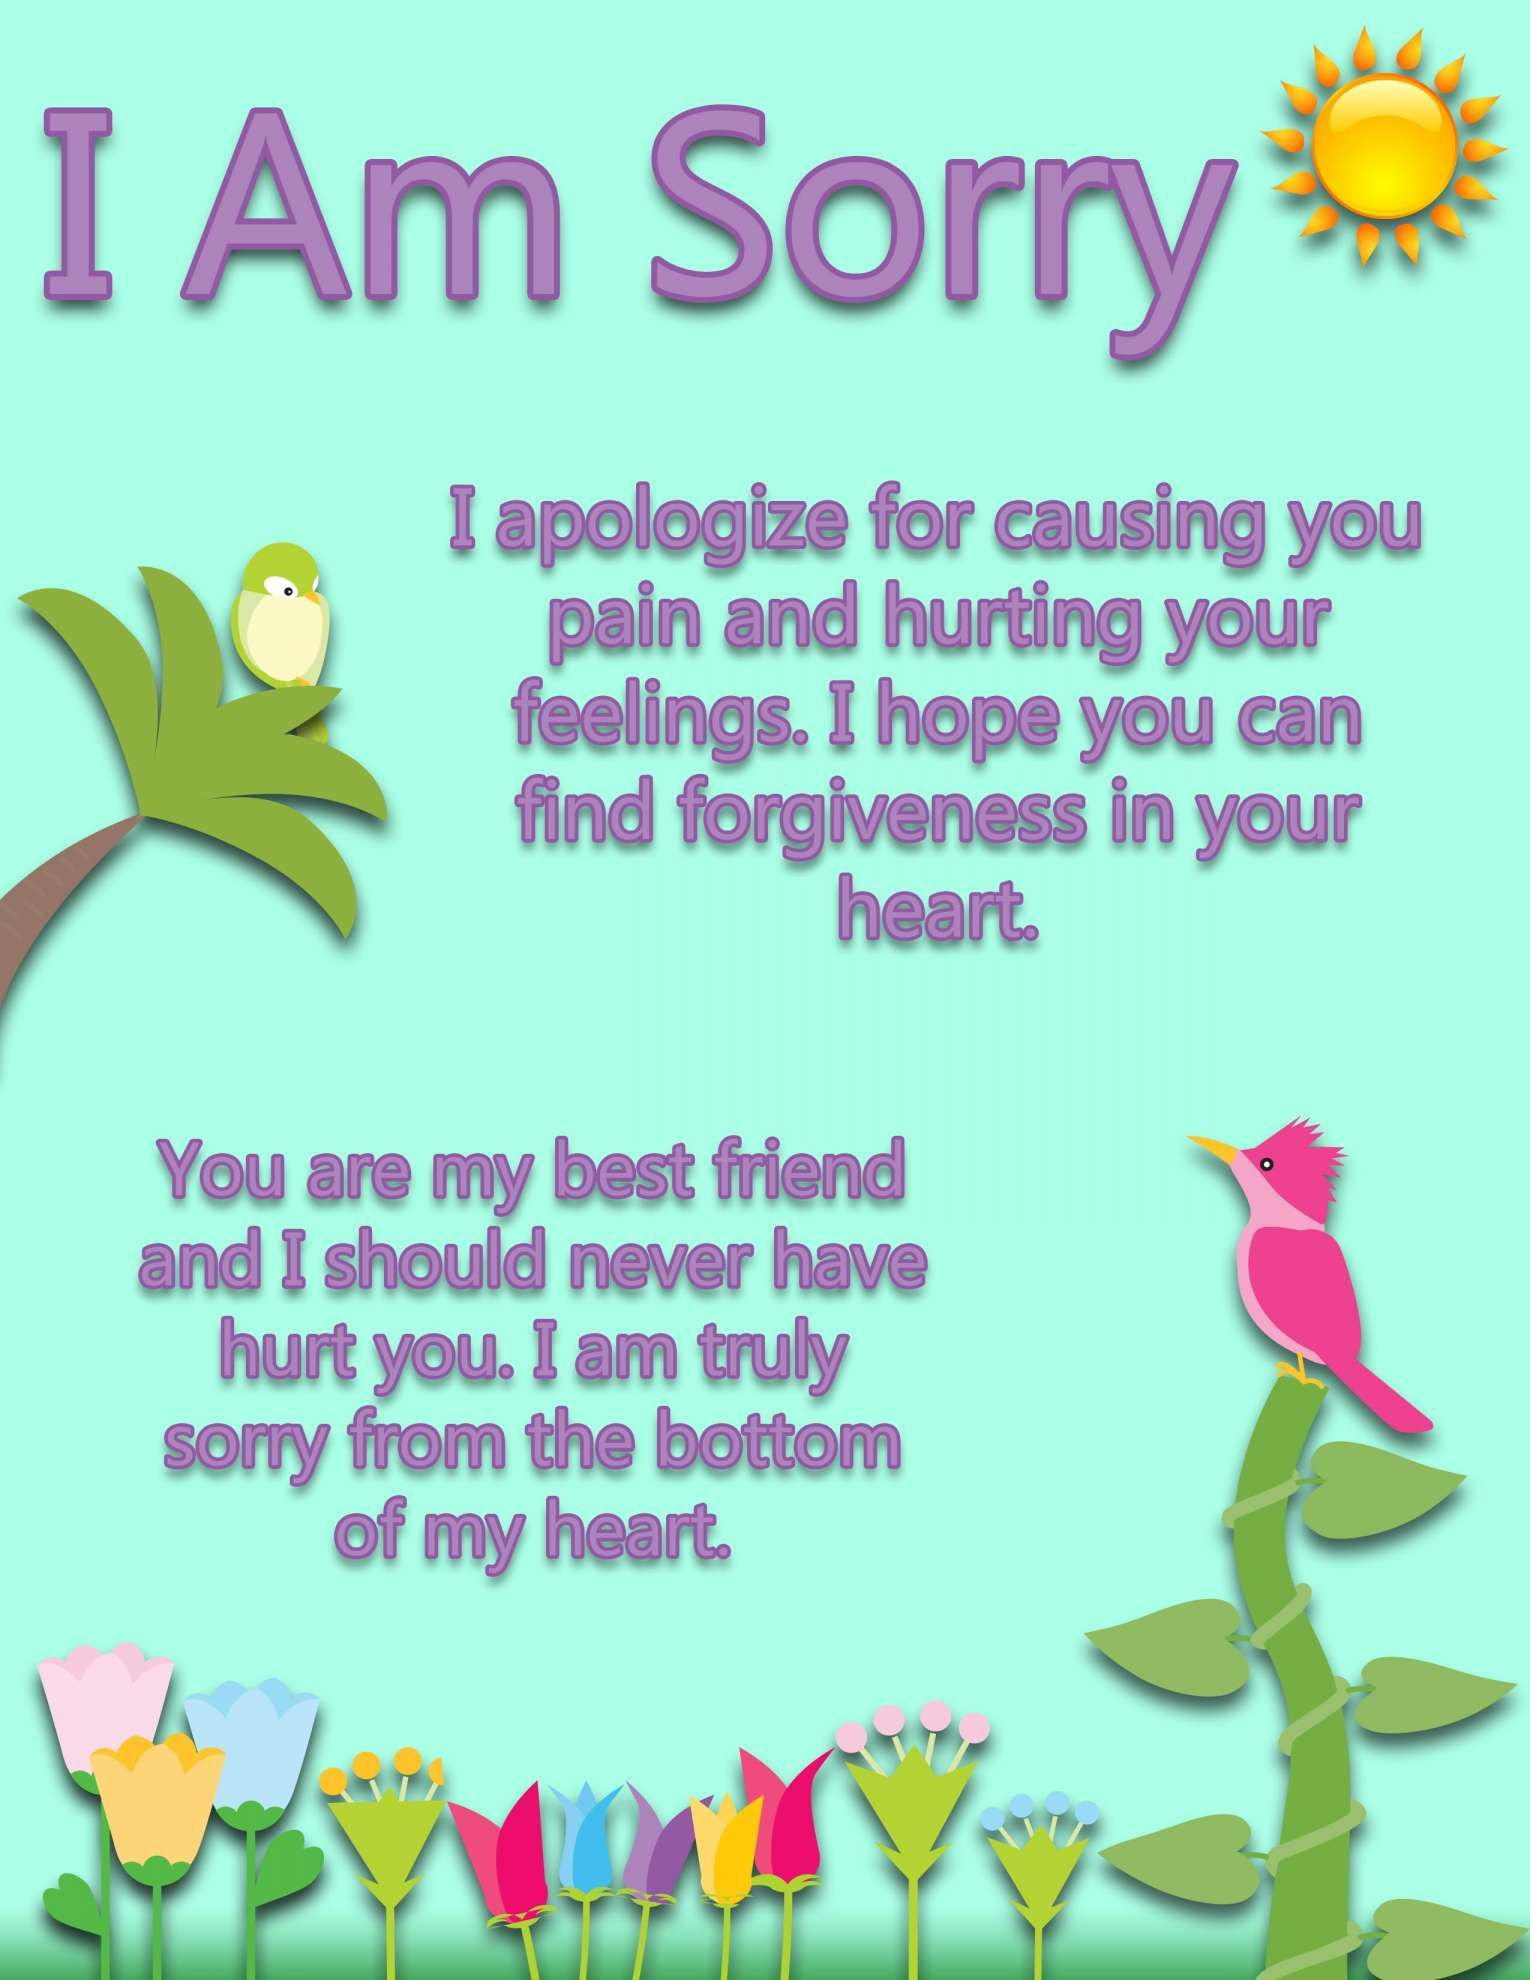 12 Asking Sorry To Best Friend Quotes Sorry Message For Friend Sorry Quotes For Friend Best Friend Quotes